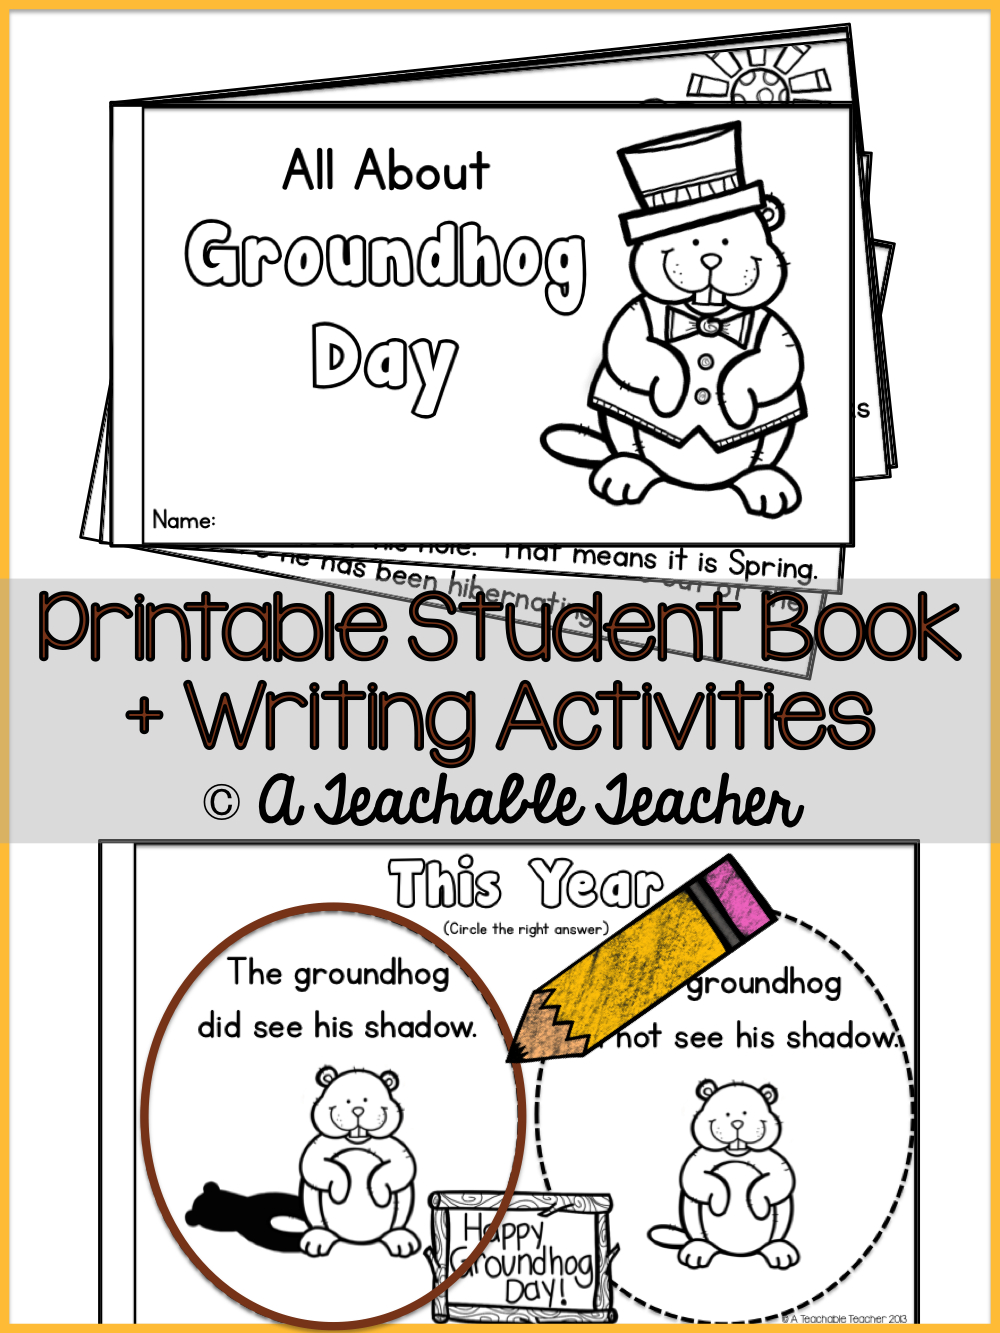 Groundhog Day | Groundhog Day Activities | Best Of Winter: New Year - Free Printable Groundhog Day Booklet